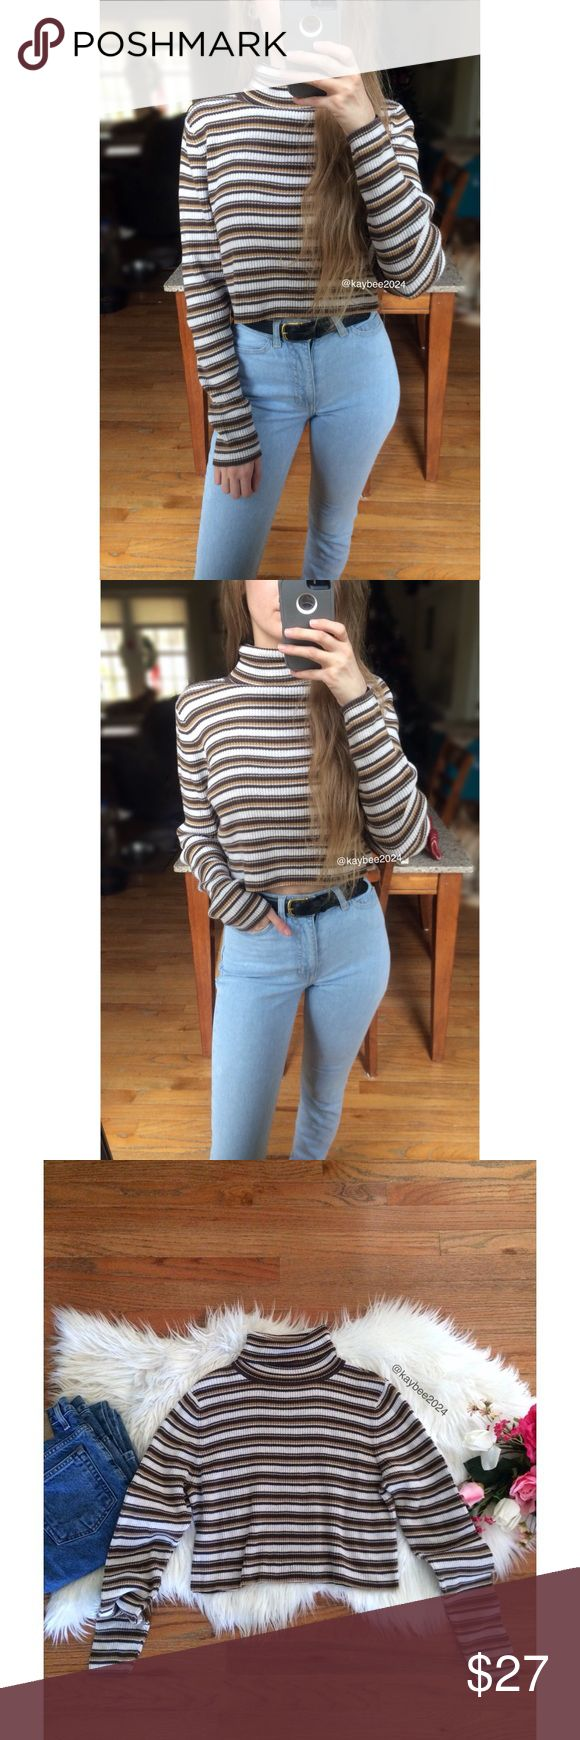 🍂 90's Essential Striped Turtleneck Crop Sweater Awesome vintage 90's / Y2K striped turtleneck crop sweater by Kim Rogers! Features a cozy ribbed 100% cotton knit in the best striped shades of chocolate brown / light cream taupe / caramel tan &black. Raw cut bottom hem. Pairs perfectly with high waisted denim! In great vintage condition minus a little hard to see fading! Fits like a small/medium! Modeled on a size xs/small, 5'2 height :)   Measurements:  Length (top of shoulder to bottom…